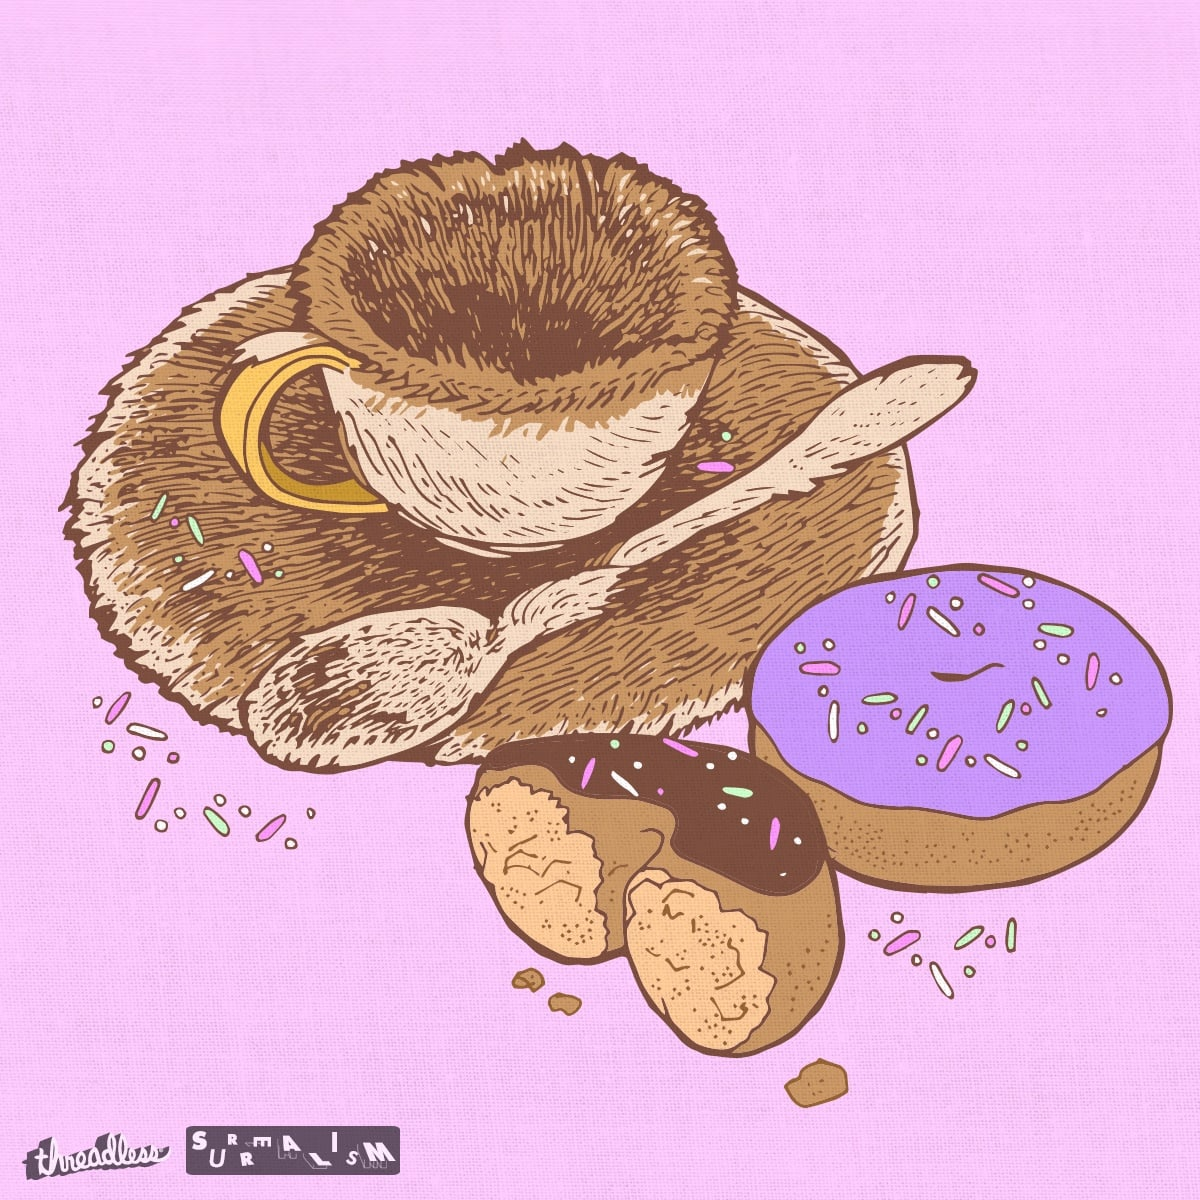 Brunch'n in Fur by napiform on Threadless